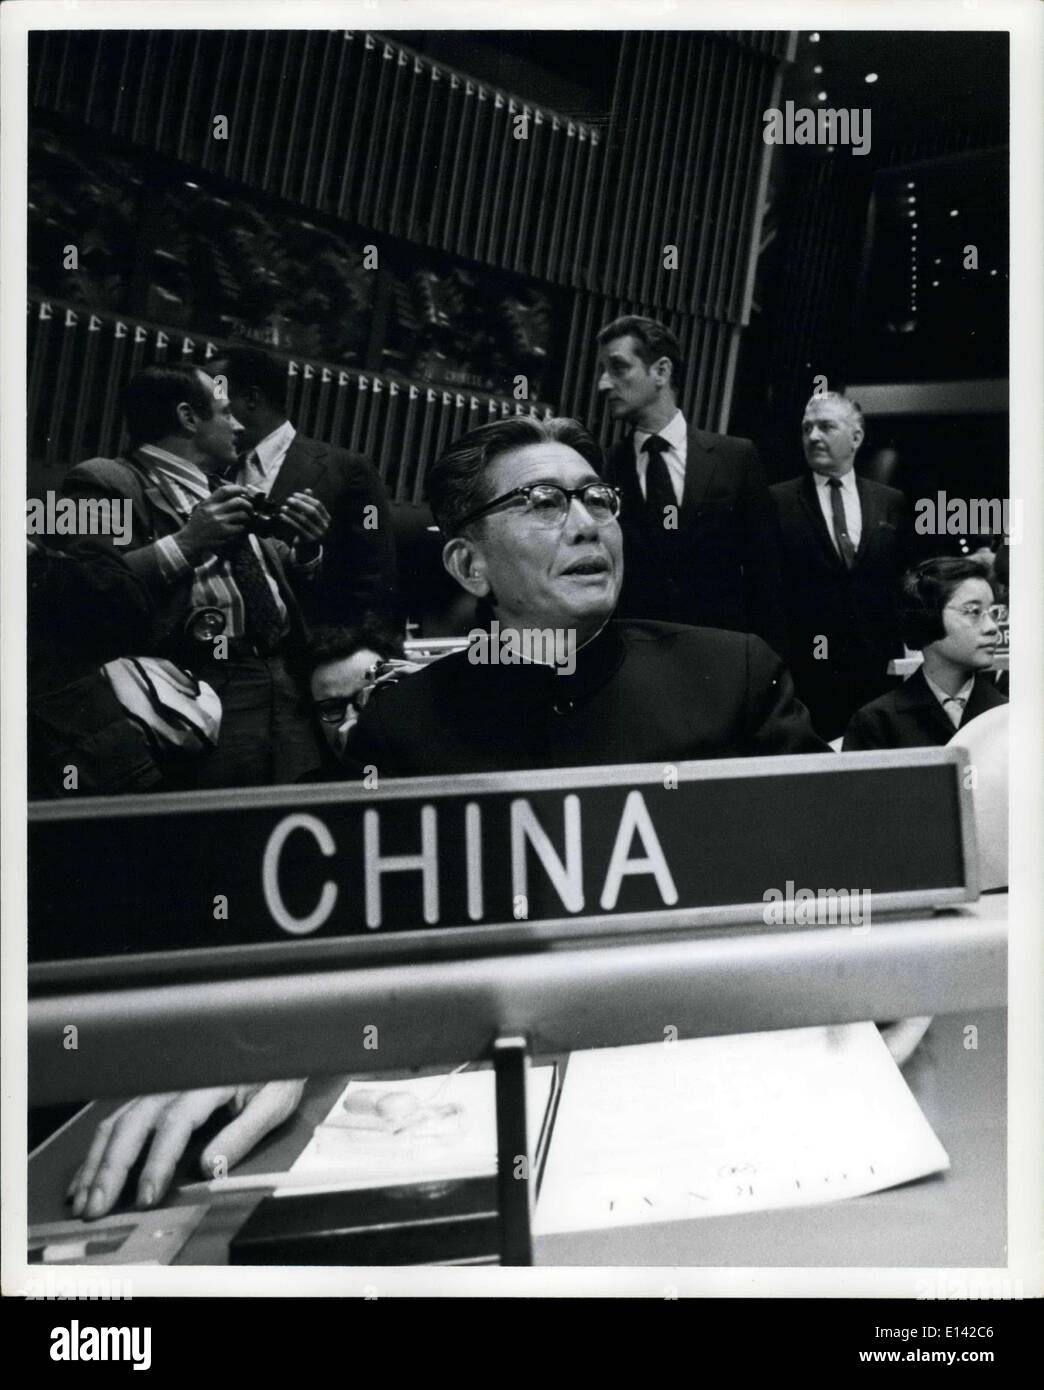 Mar. 31, 2012 - Deputy Foreign Minister of the Peoples Republic of China, Chiao Kuan-Hua was formally seated at the 26th General Assembly of the United Nations - Stock Image